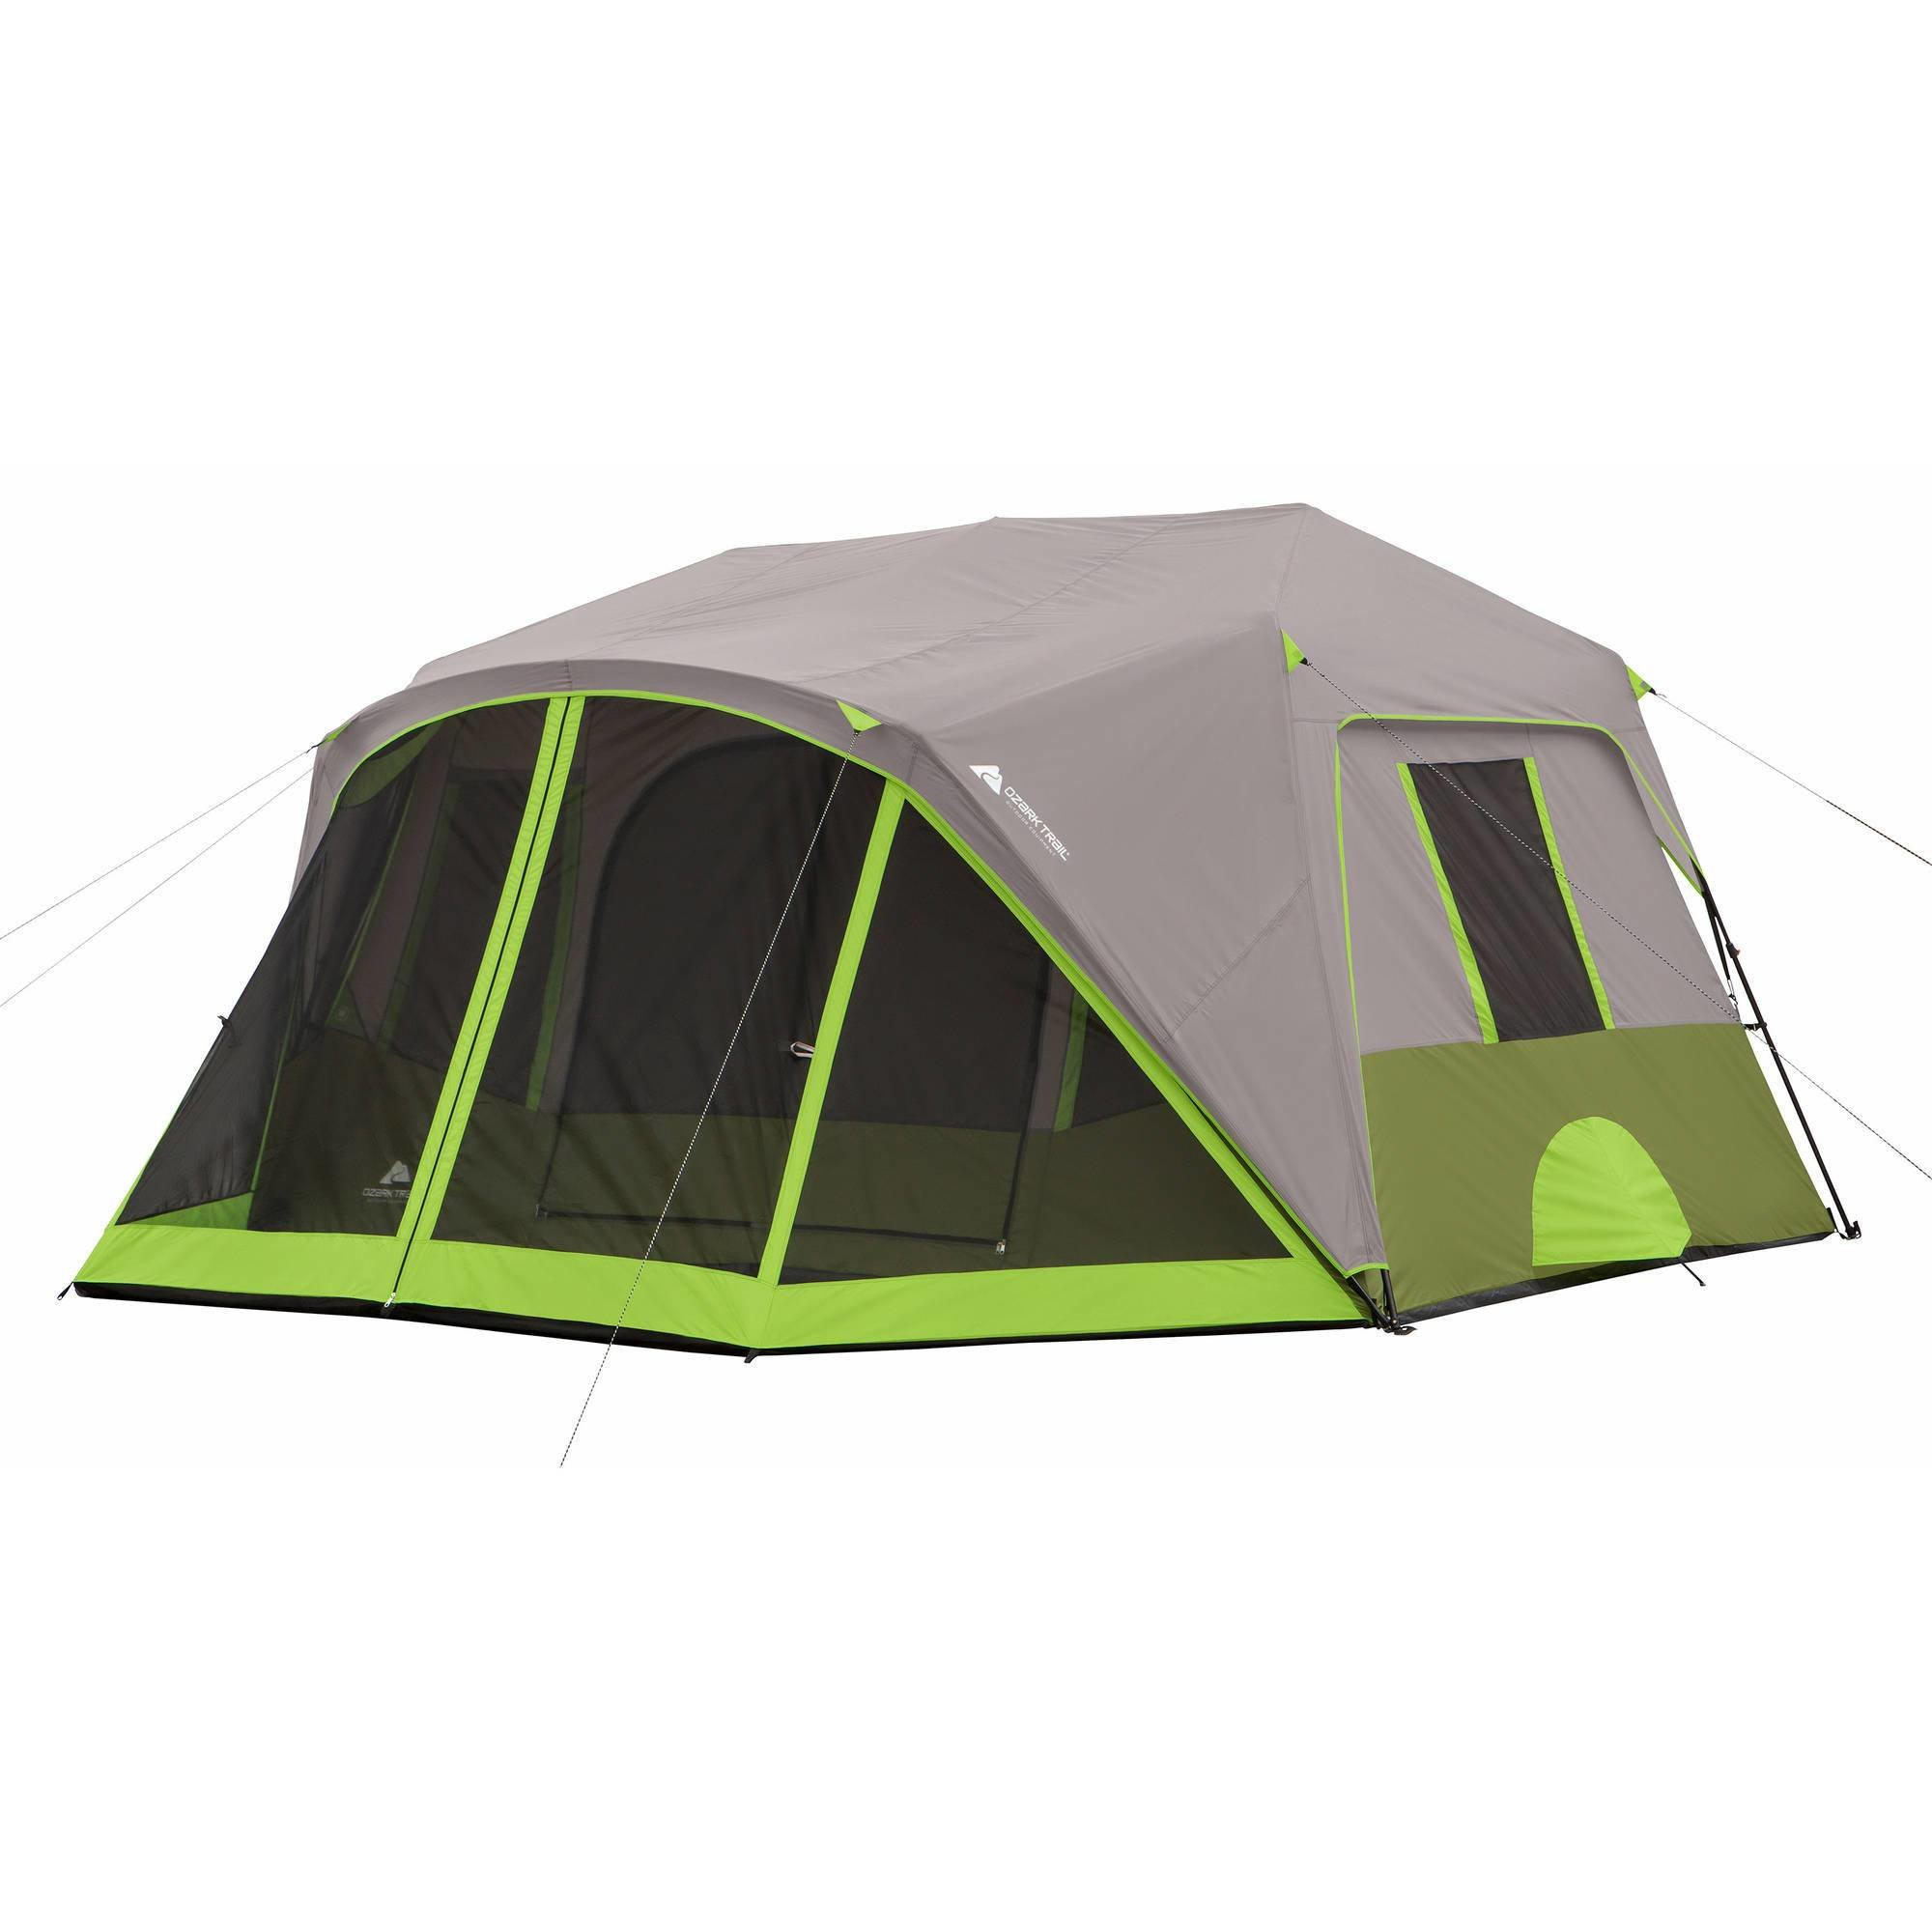 Best Ozark Trail 9 Person 2 Room Instant Cabin Tent With Screen With Pictures